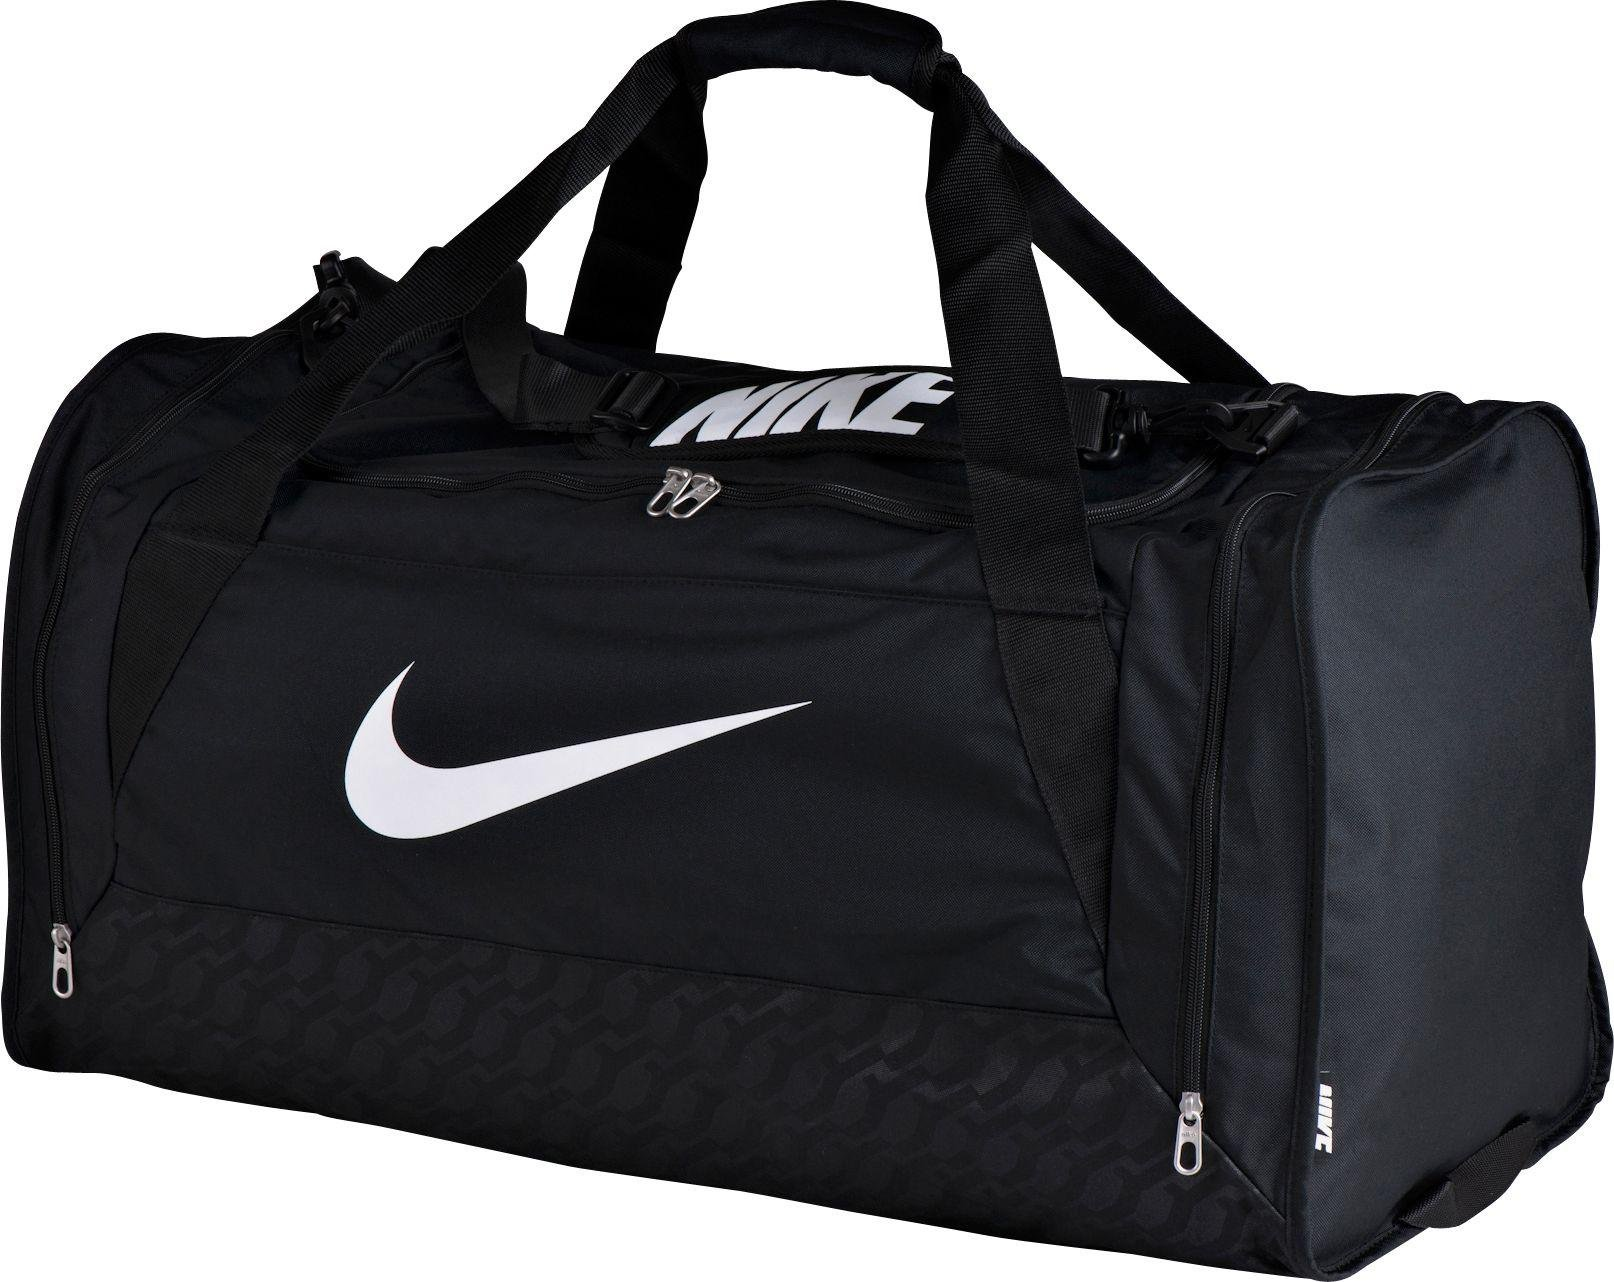 d906a3a0190711 16.99 Nike - Brasilia Large Holdall - Black » Sports » Deals of the ...